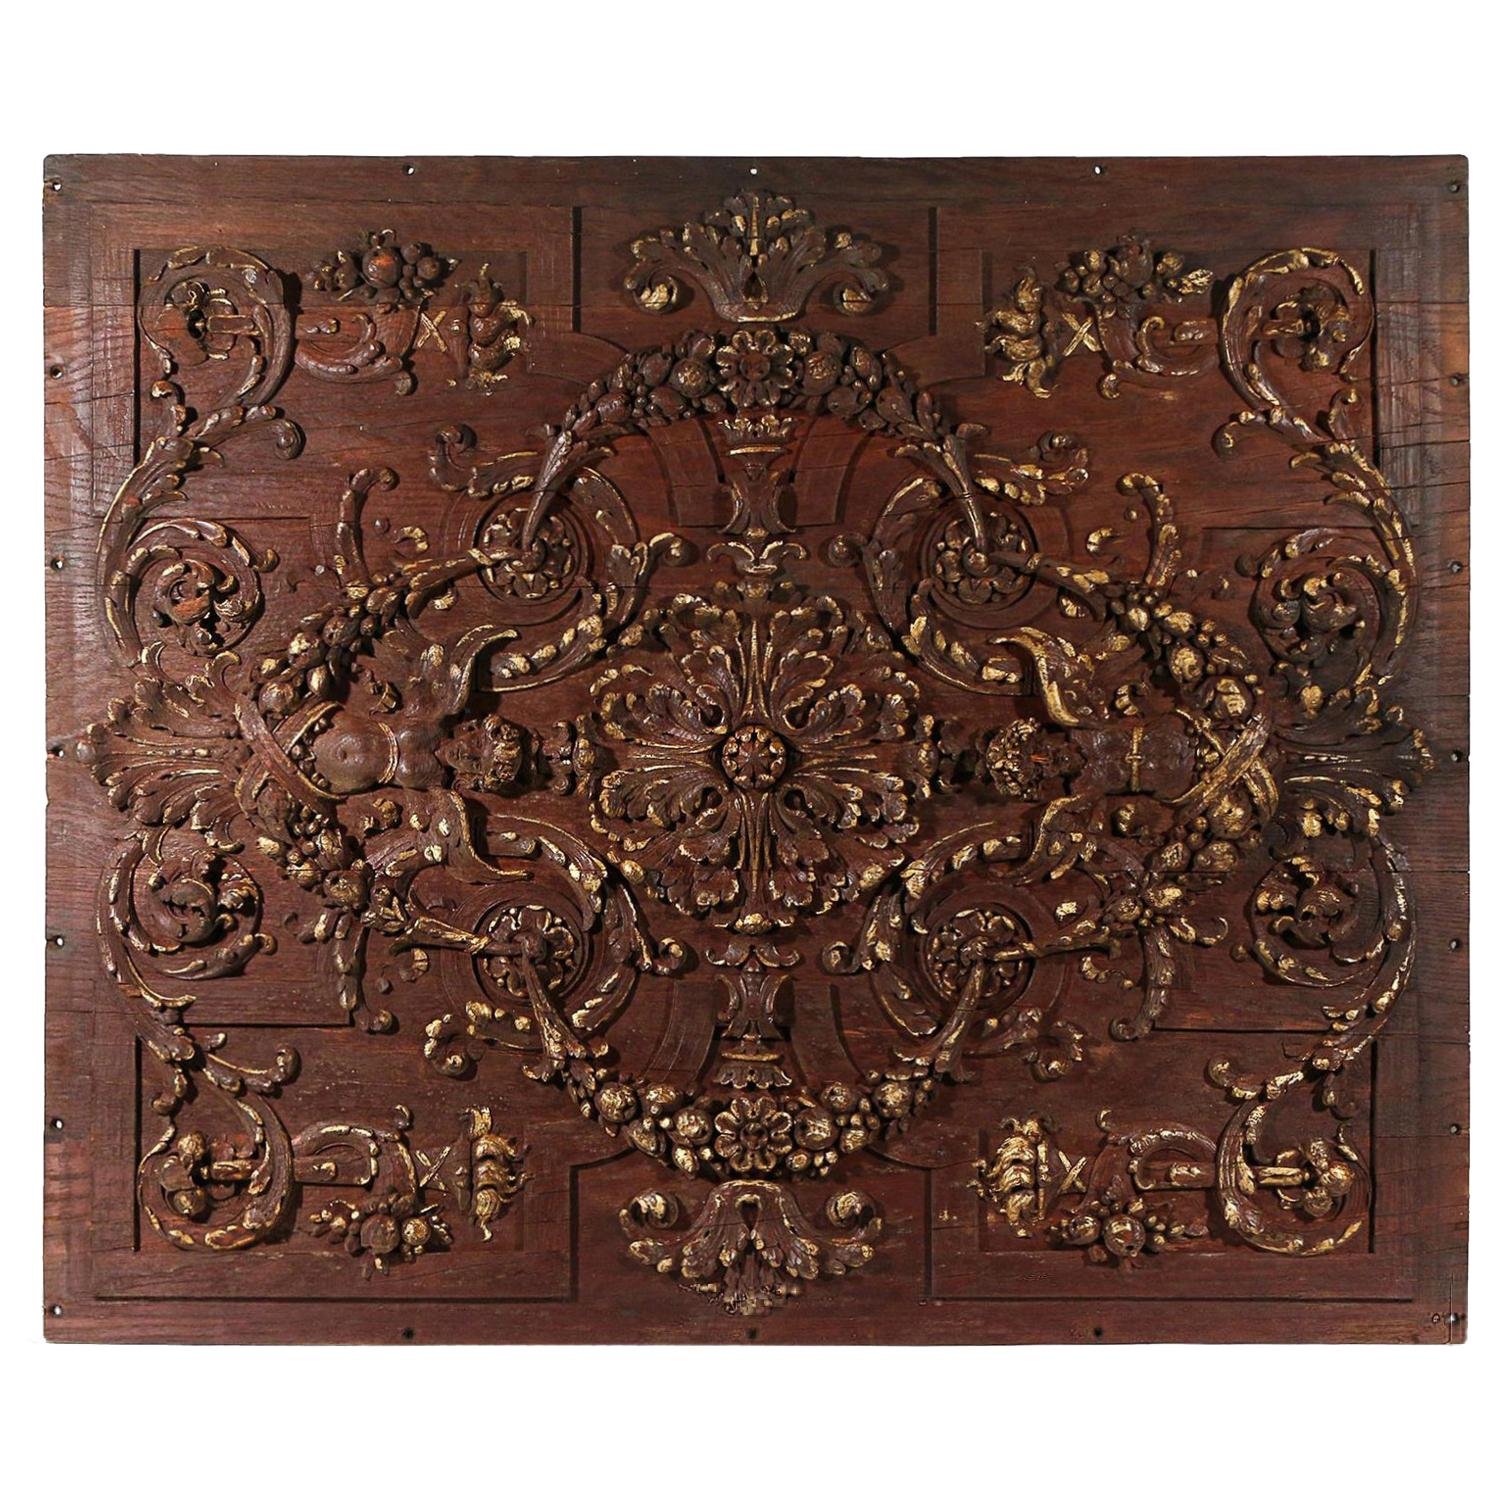 18th-19th Century Dark-Brown Italian Walnut Rococo Carved Wall, Ceiling Panel